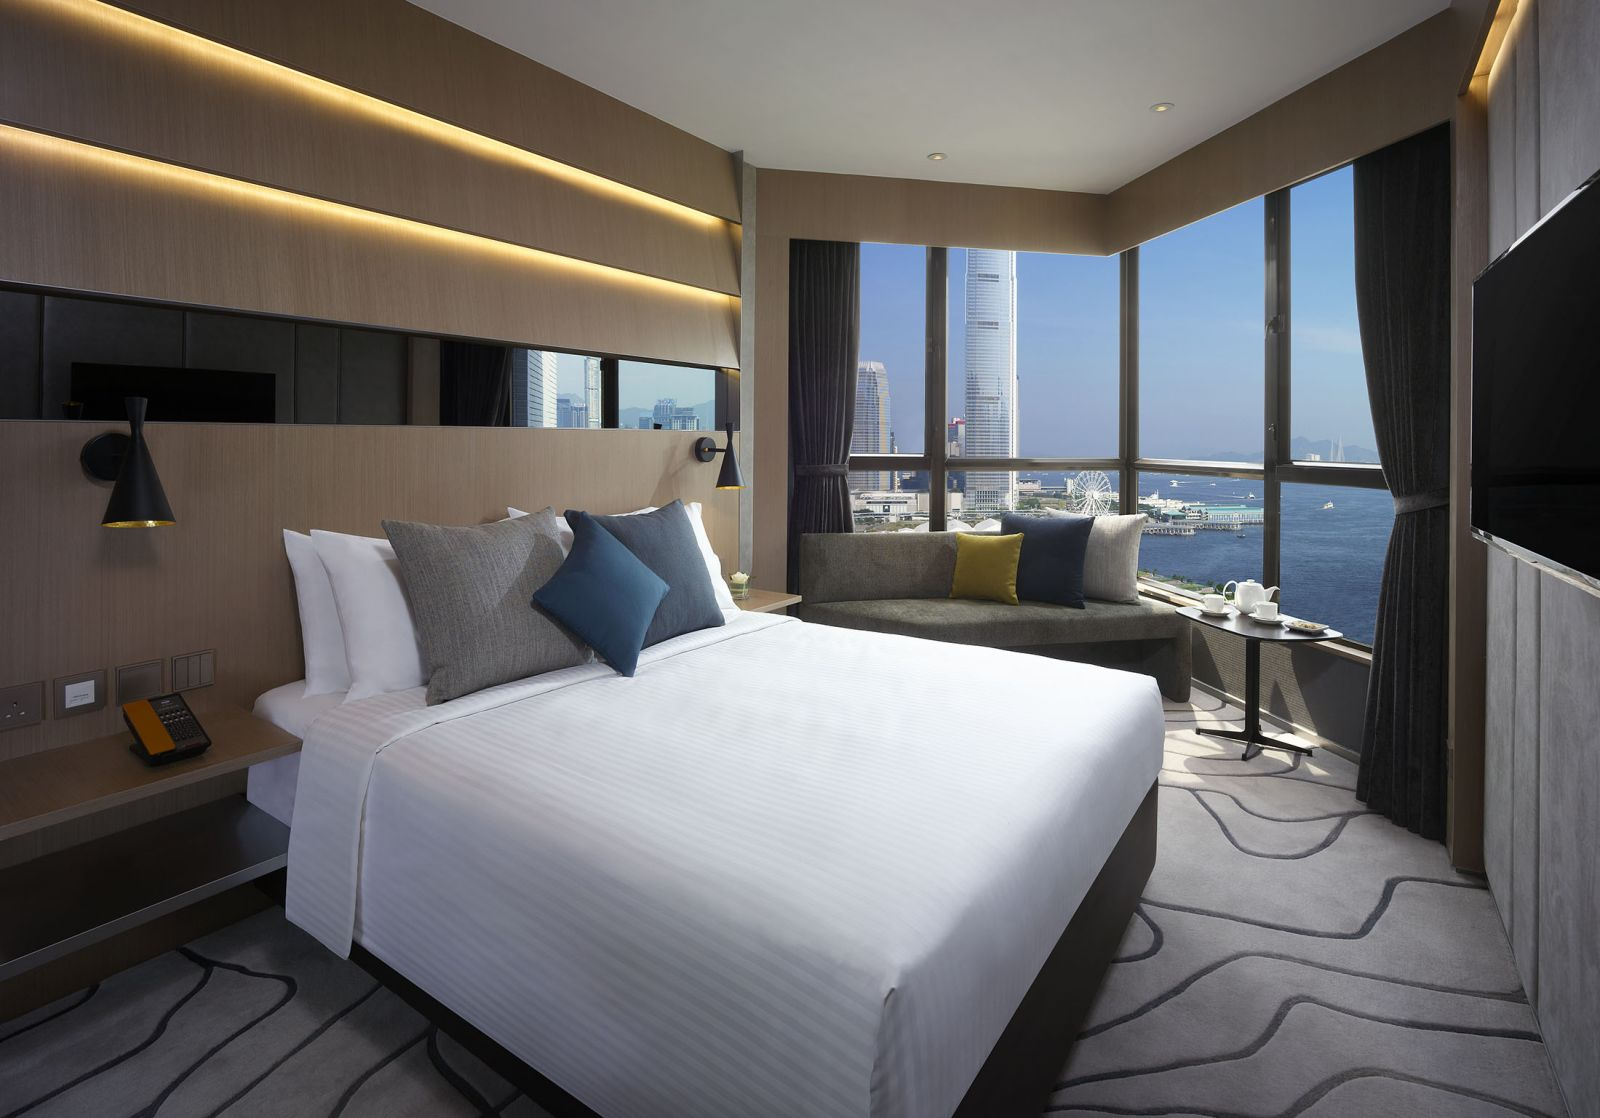 The Optimum Floor Harbour View Room